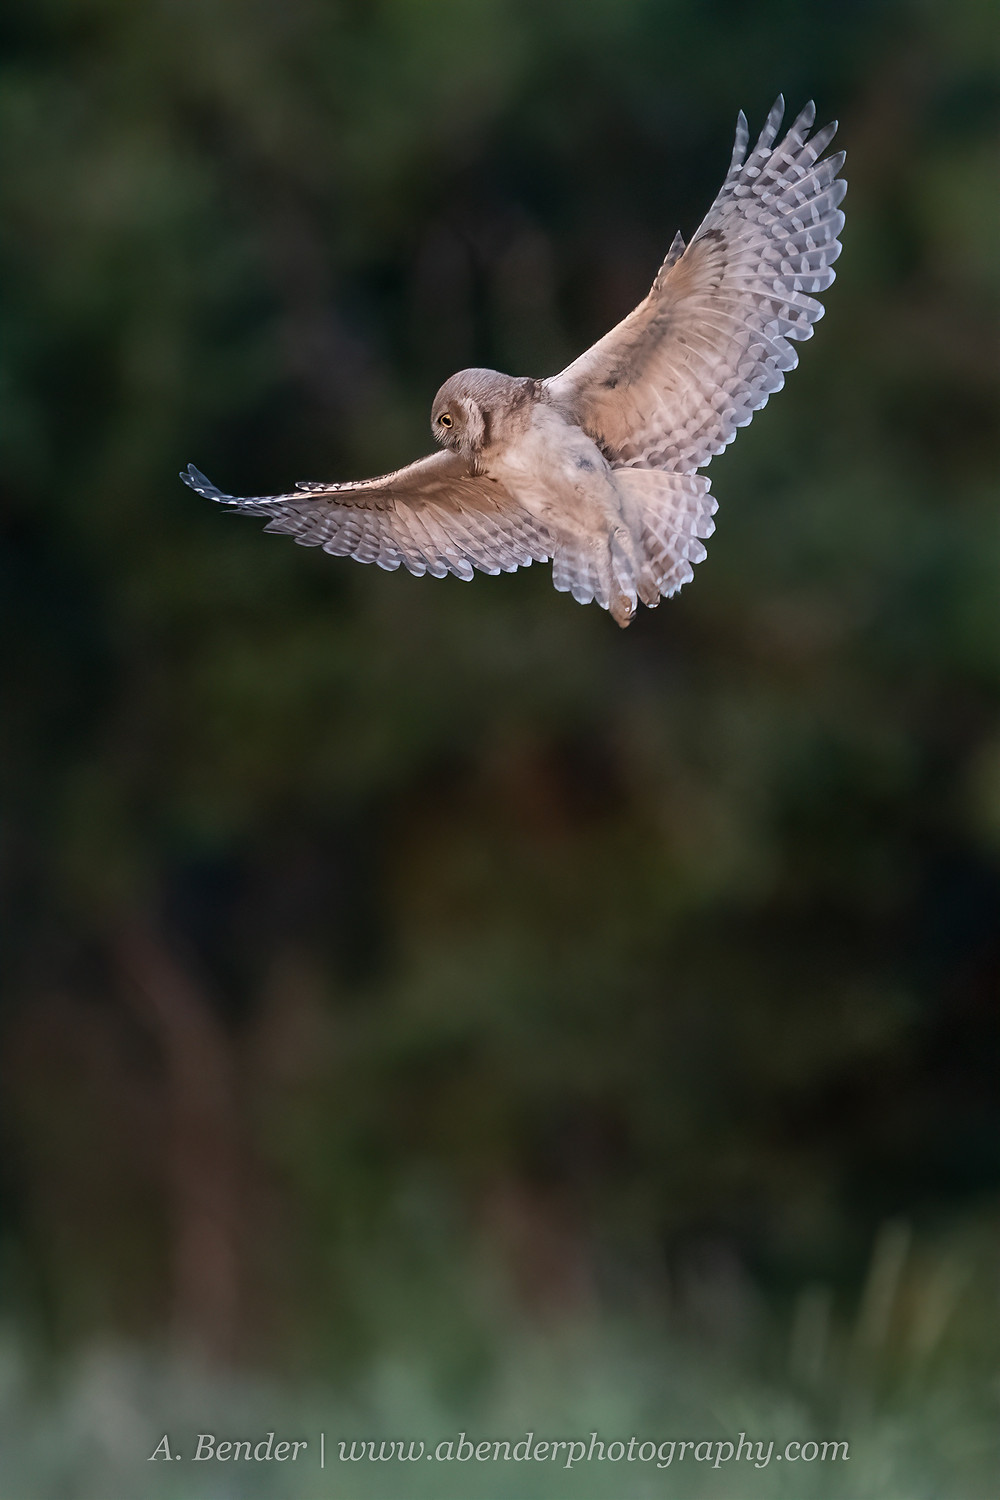 A burrowing owl in flight over a field in twilight in northern Texas | A Bender Photography LLC